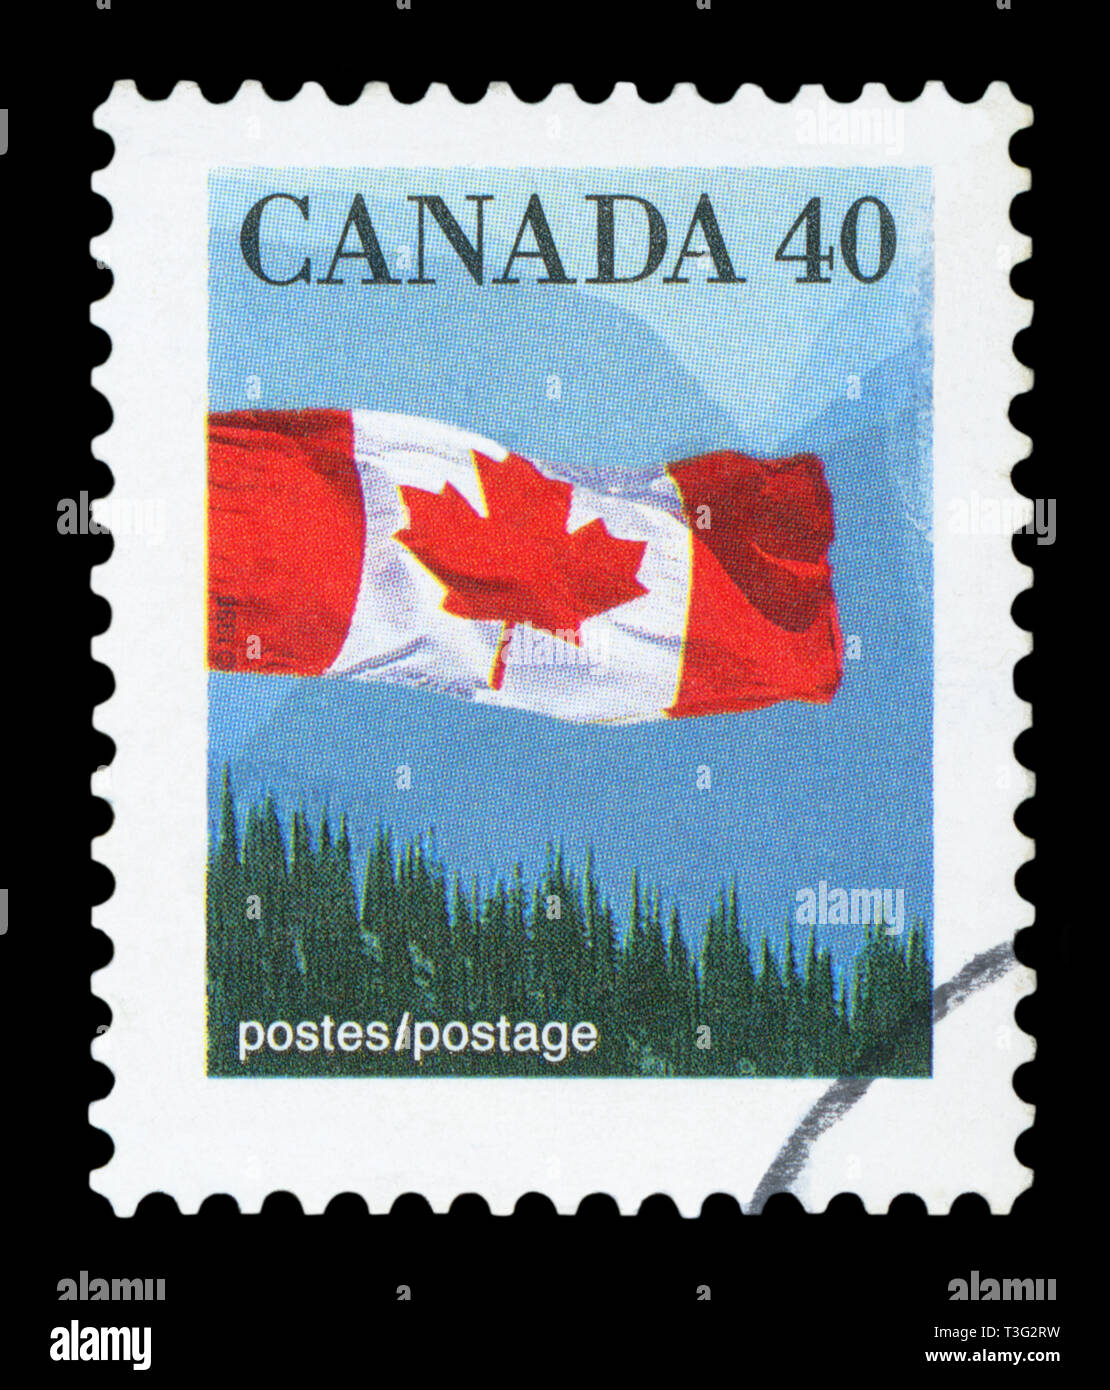 CANADA - CIRCA 1990: A stamp printed in Canada shows Canadian flag and Hills, circa 1990. Stock Photo